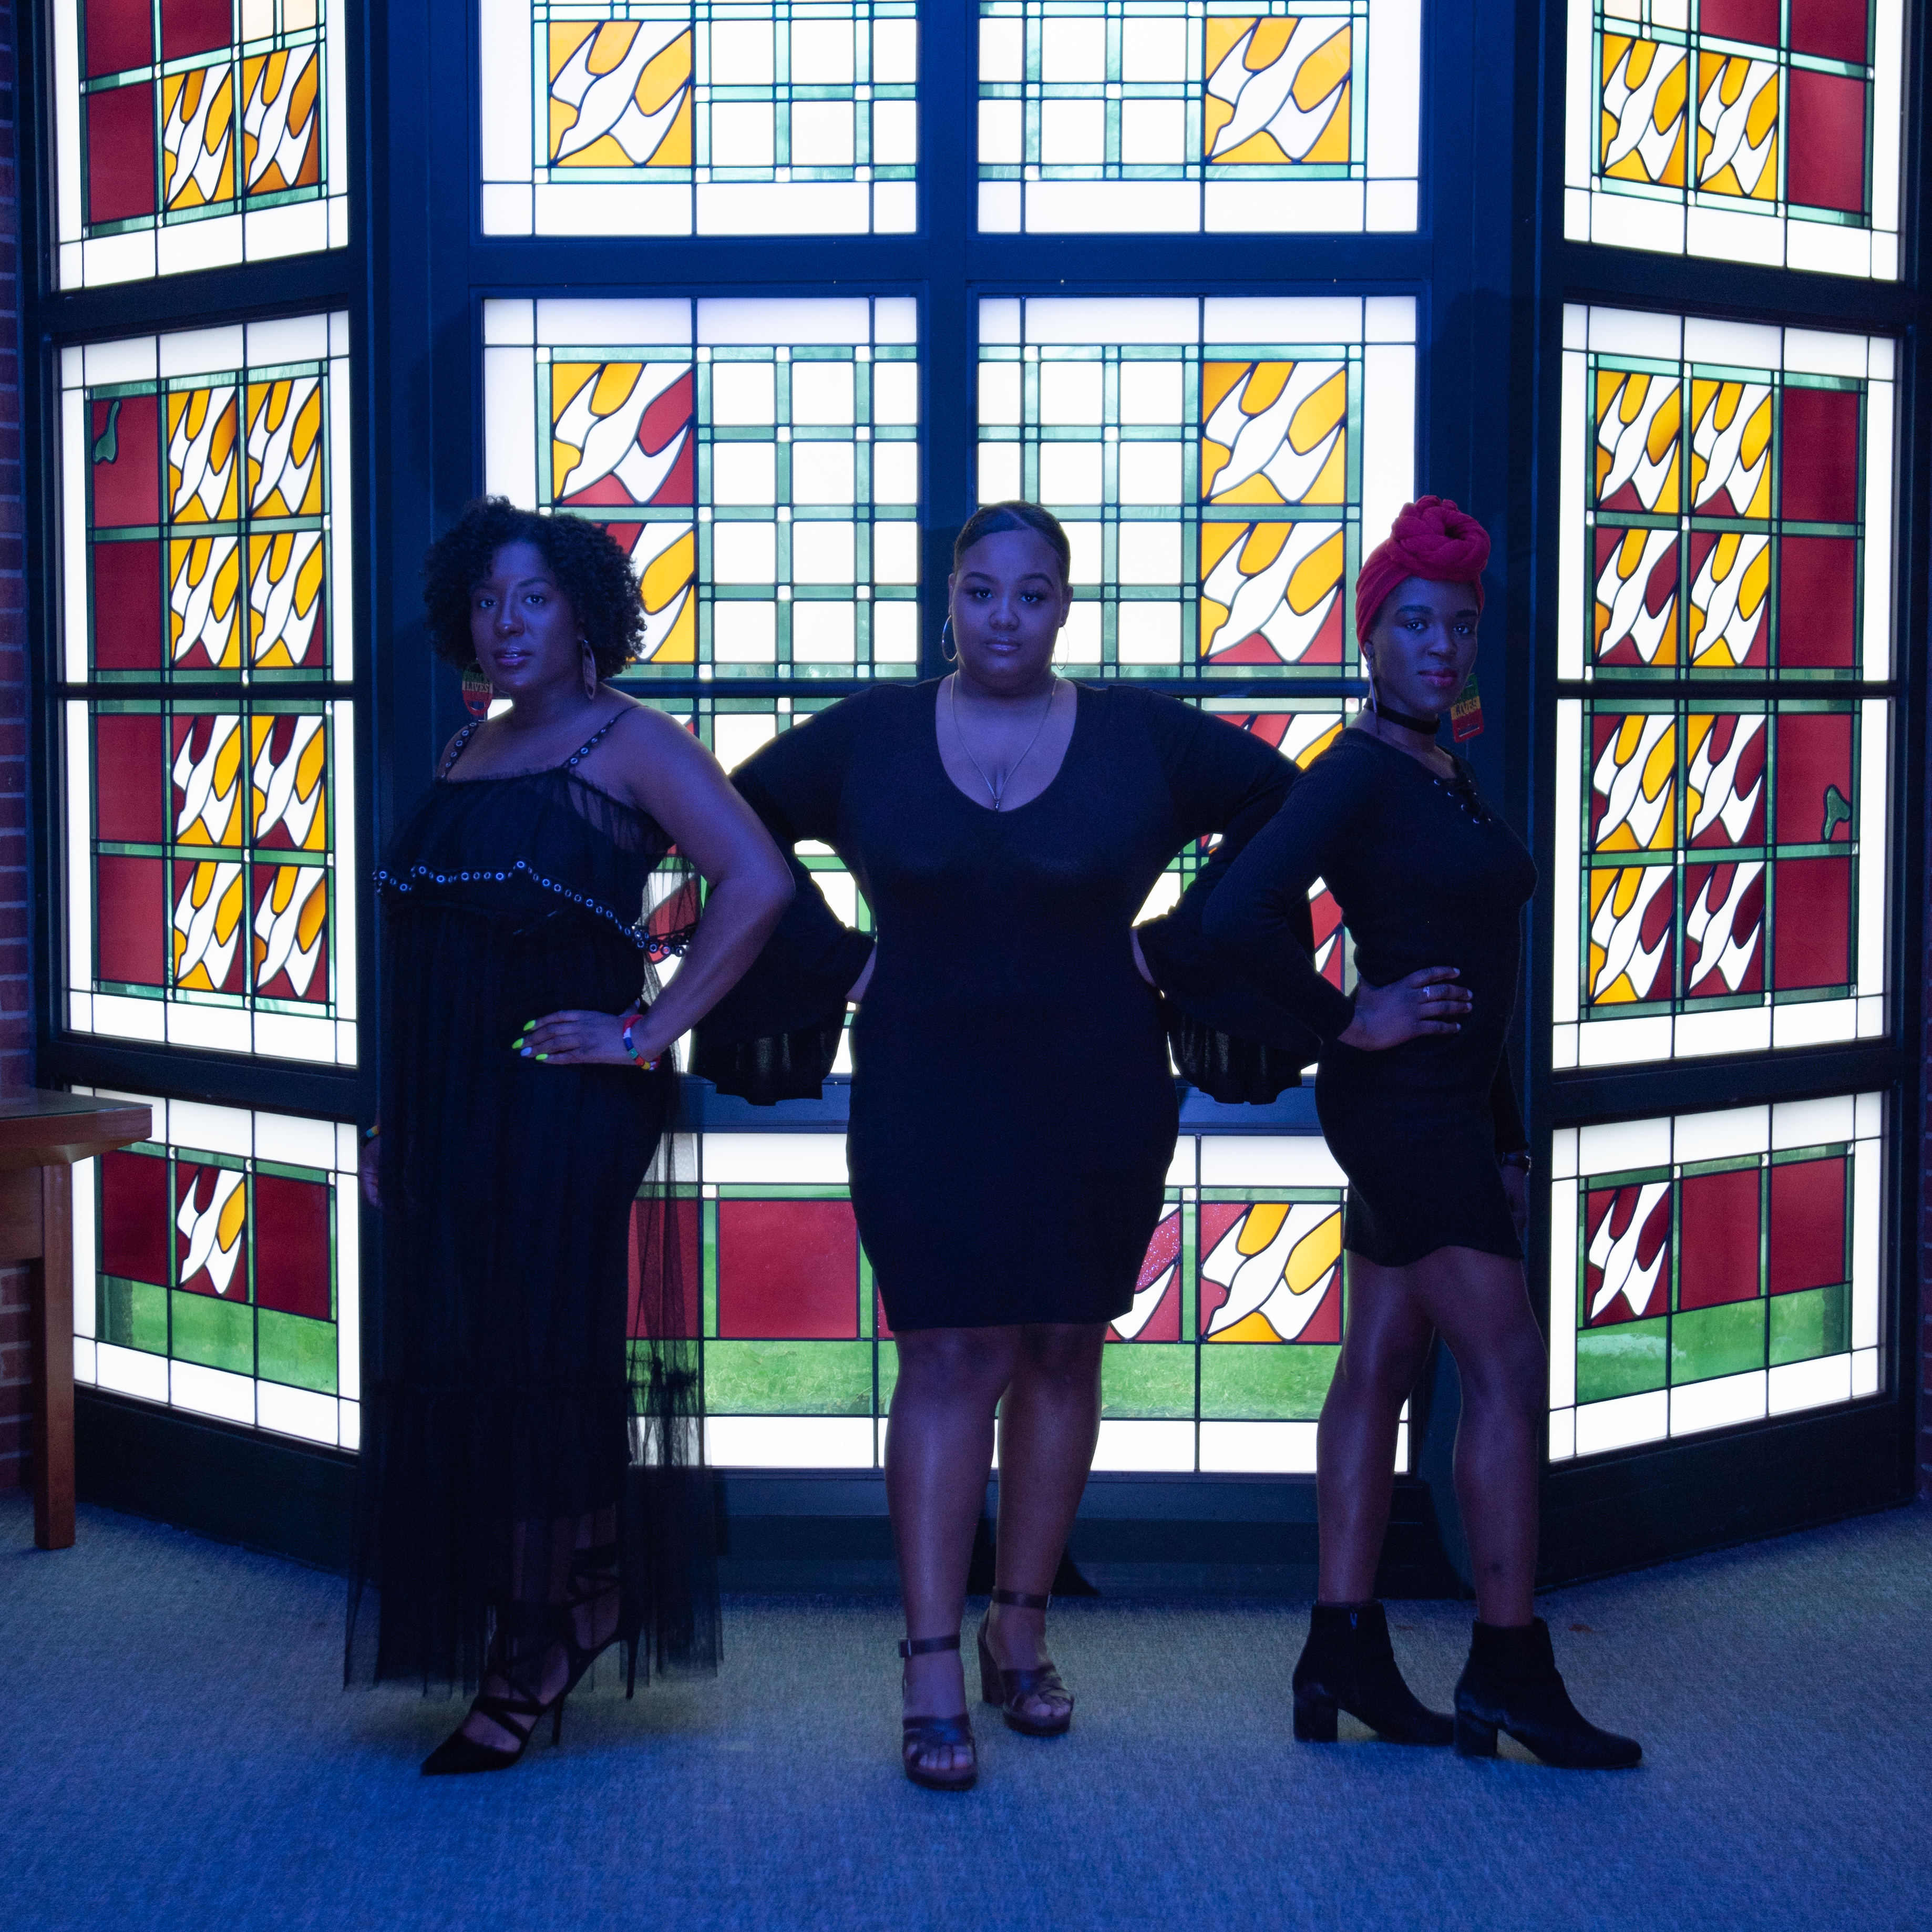 Caption: Syracuse-based gospel trio A New Generation Eternally Lifting Souls (A.N.G.E.L.S) sing because they want to pay tribute to victims of shootings in Syracuse, but they also want to make us aware of a larger problem., Credit: Brianna Green